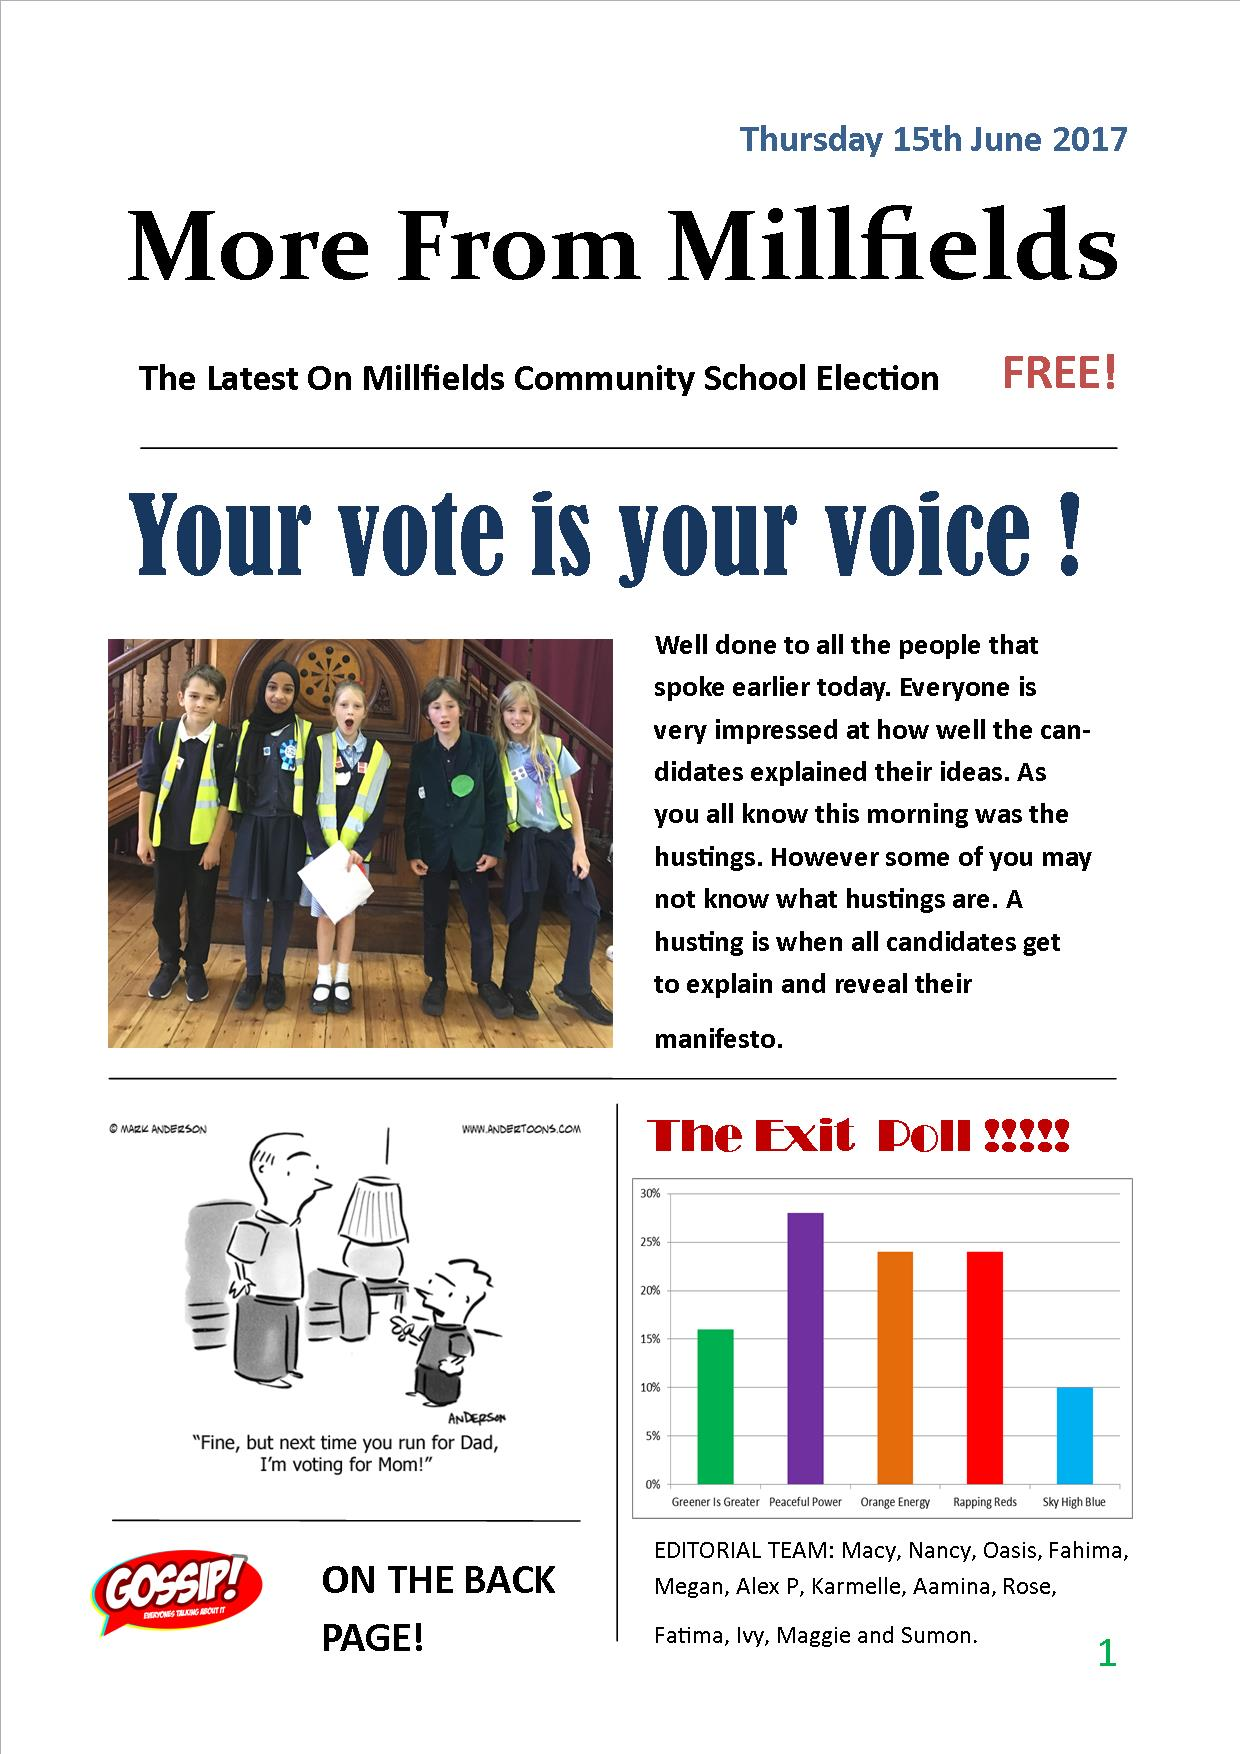 More From Millfields Democracy Week Thursday